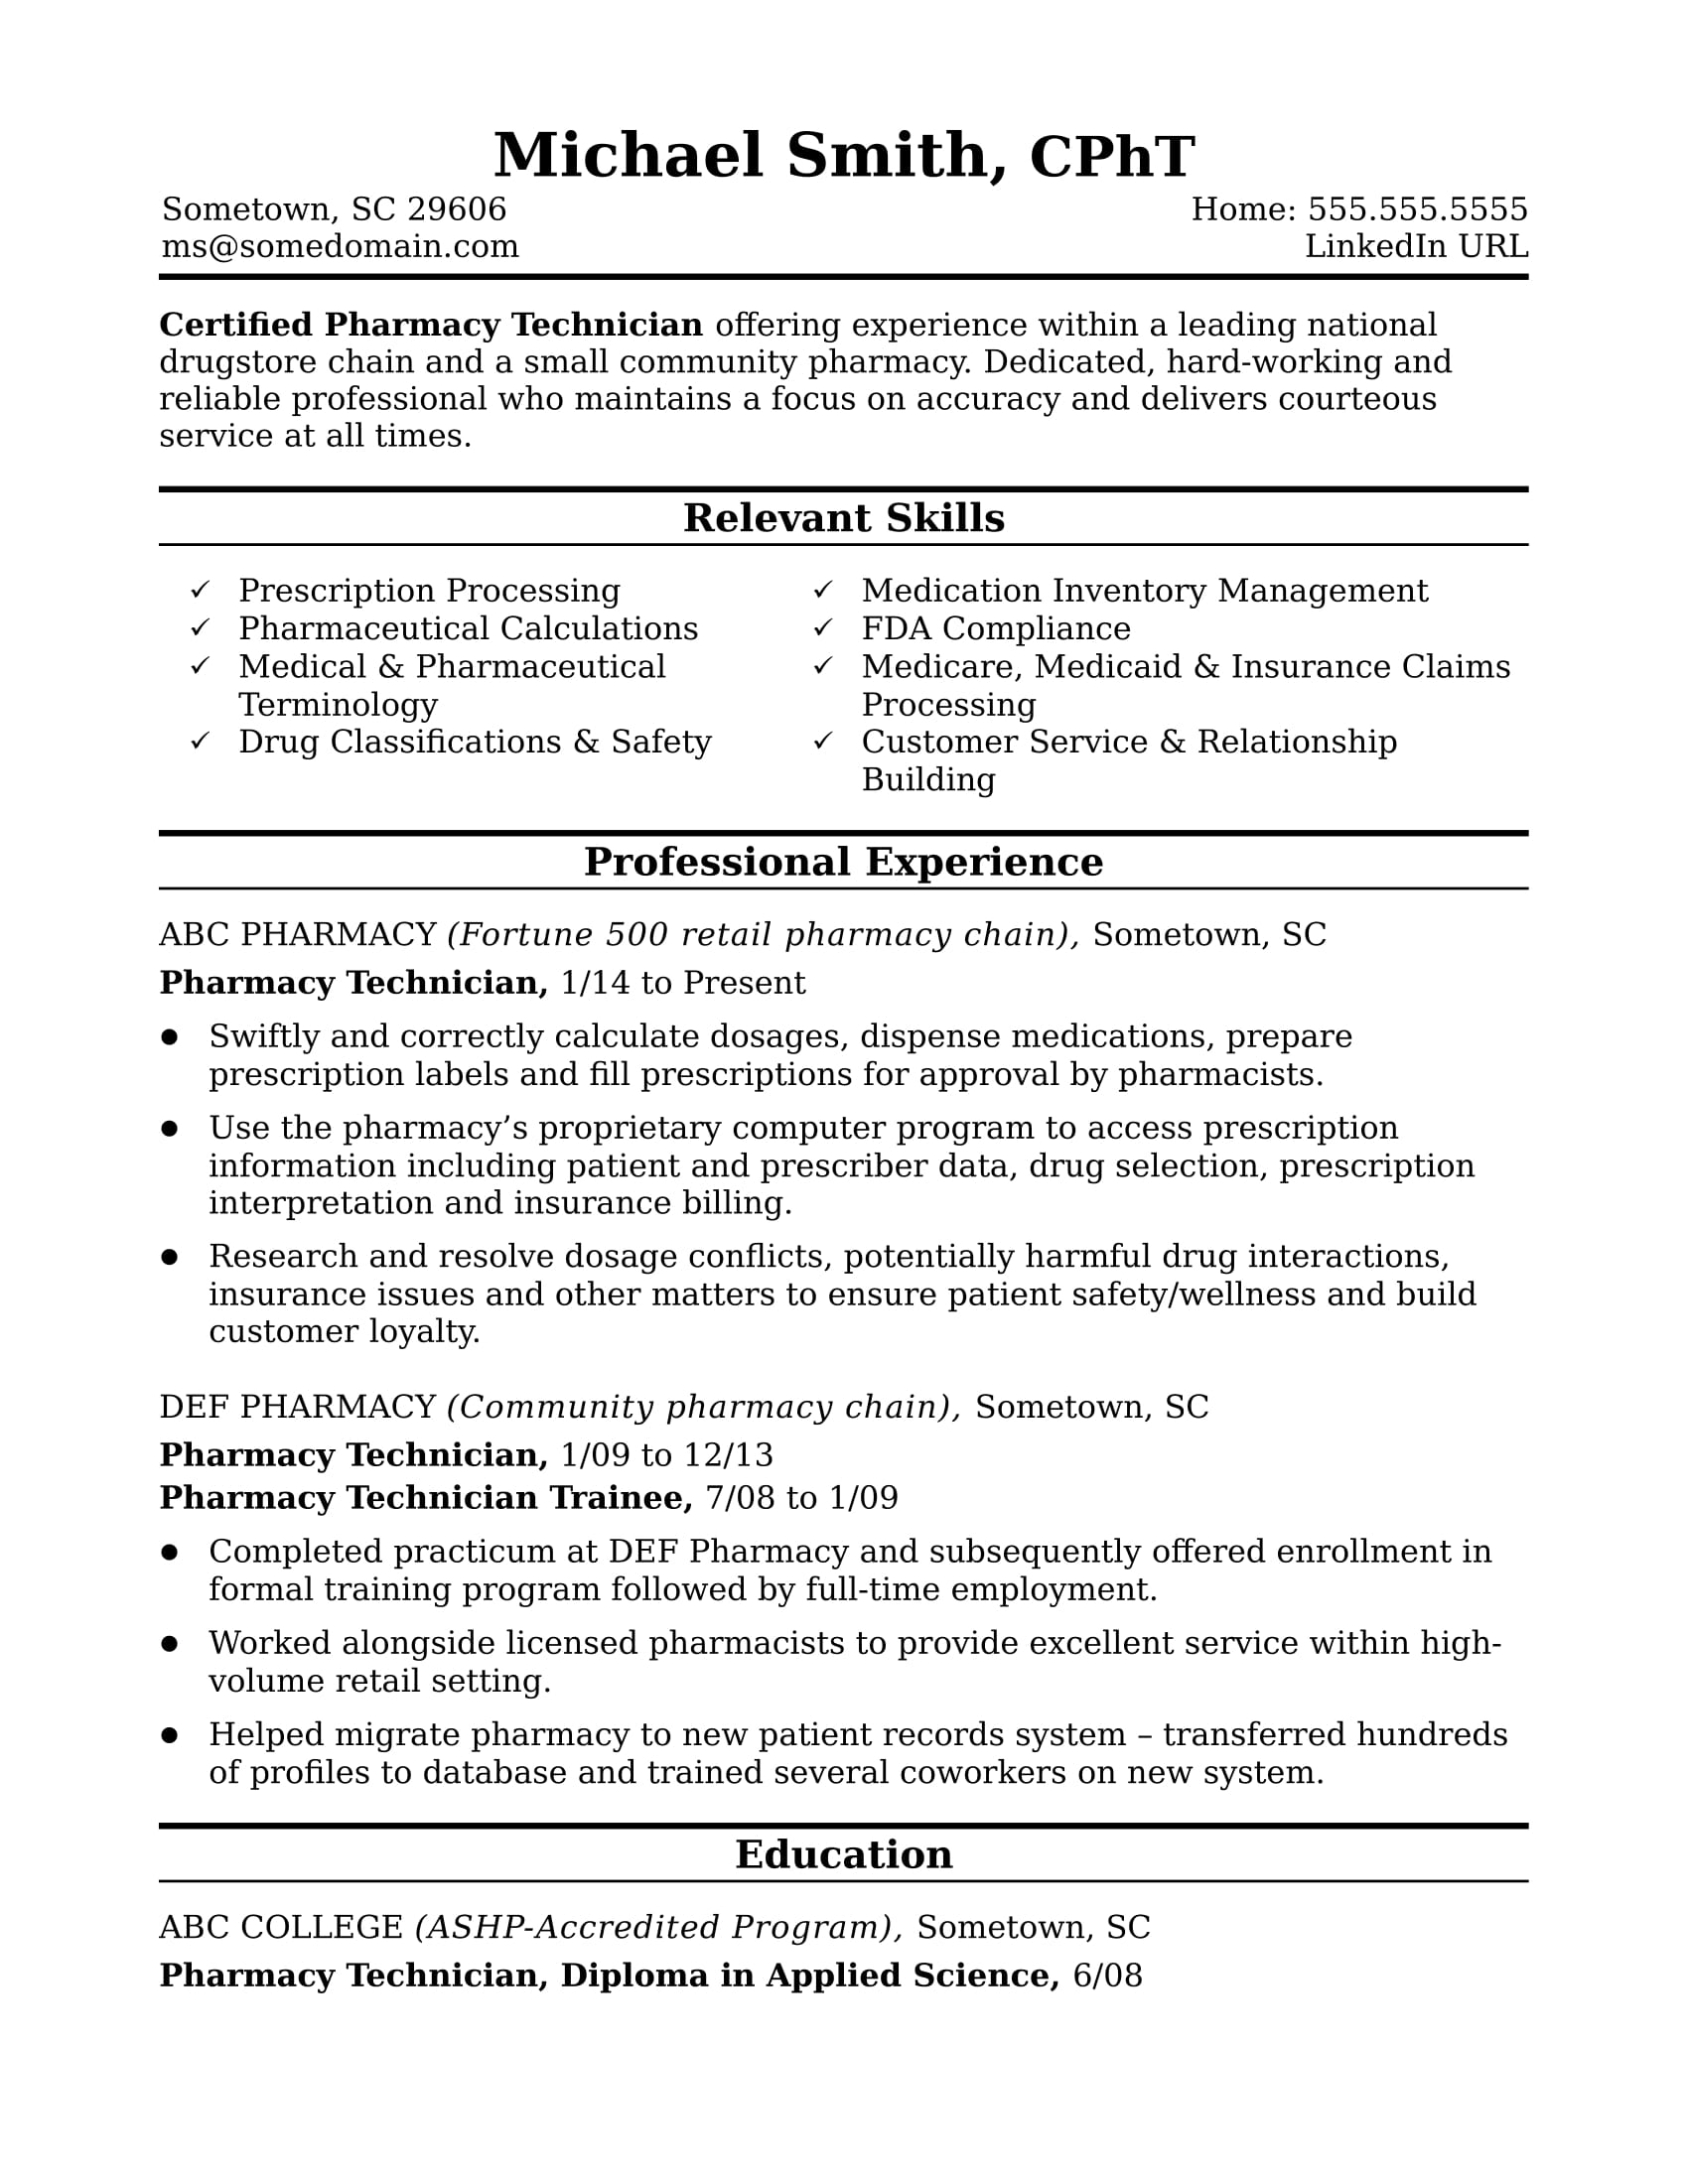 midlevel pharmacy technician resume sample monster senior template email for sending Resume Senior Technician Resume